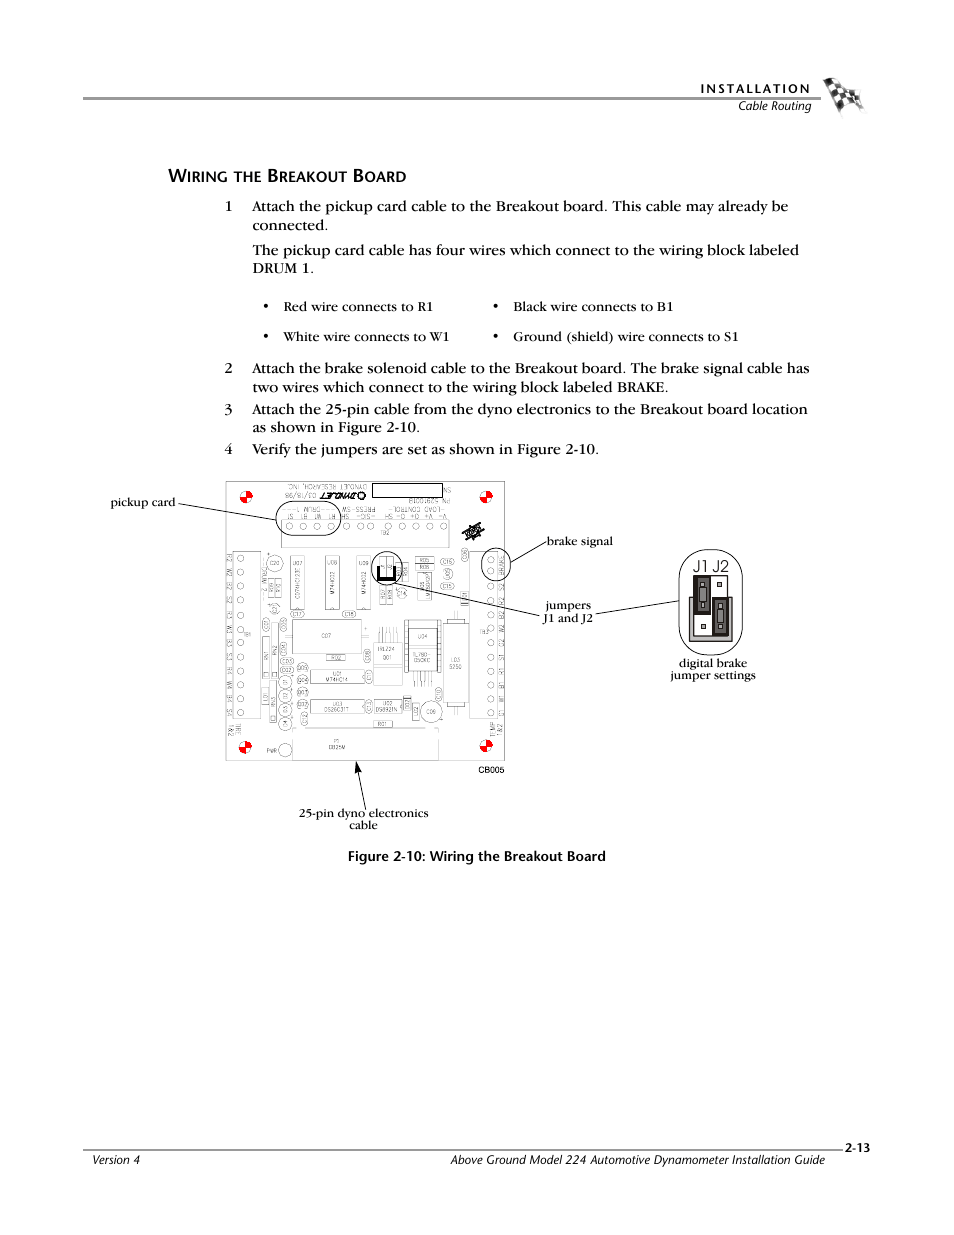 medium resolution of wiring the breakout board dynojet 224x installation guide user manual page 33